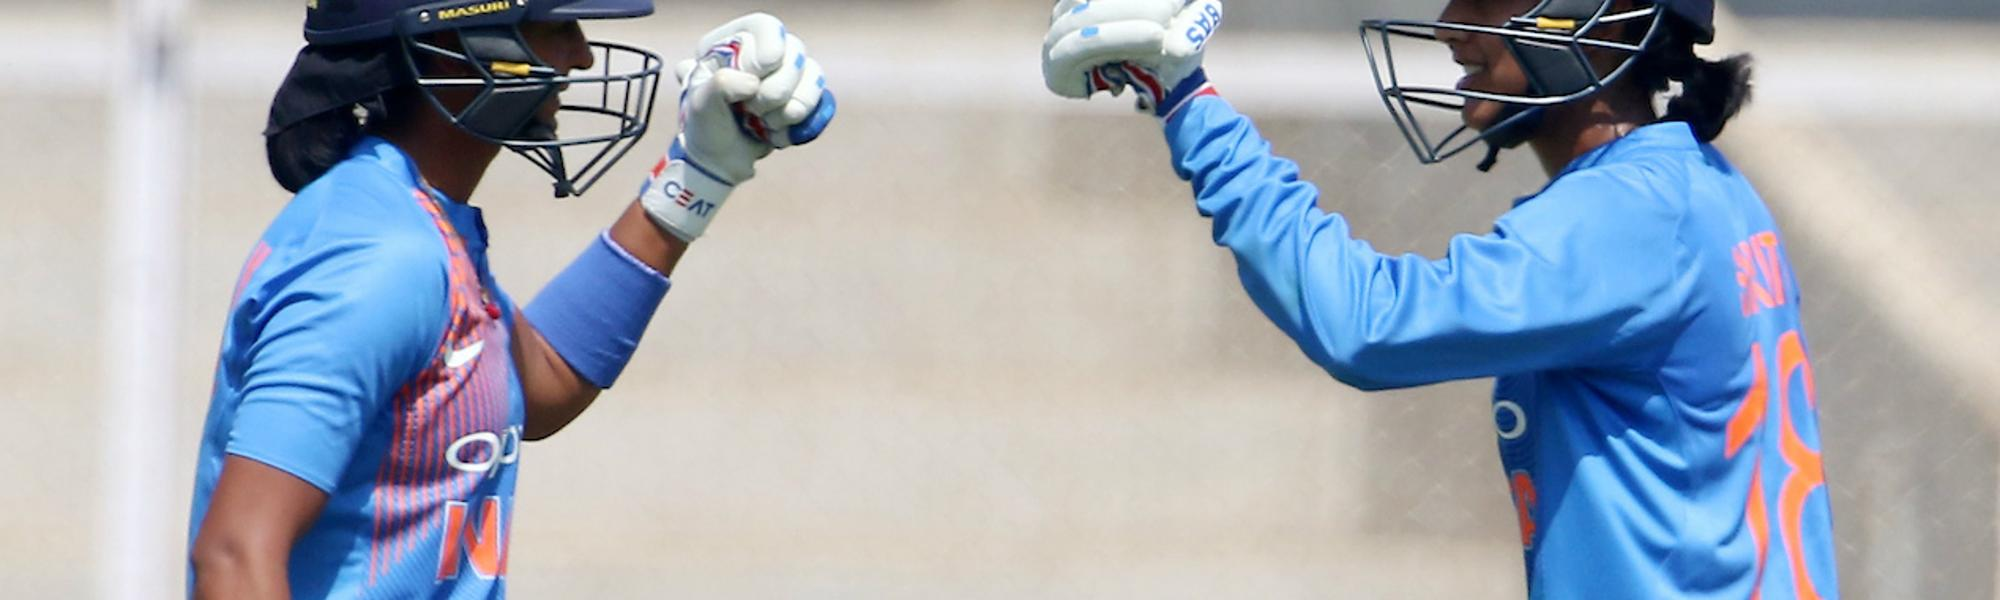 Smriti Mandhana (right) and Harmanpreet Kaur (left) will be leading the two teams in the Women's T20 Challenge Match